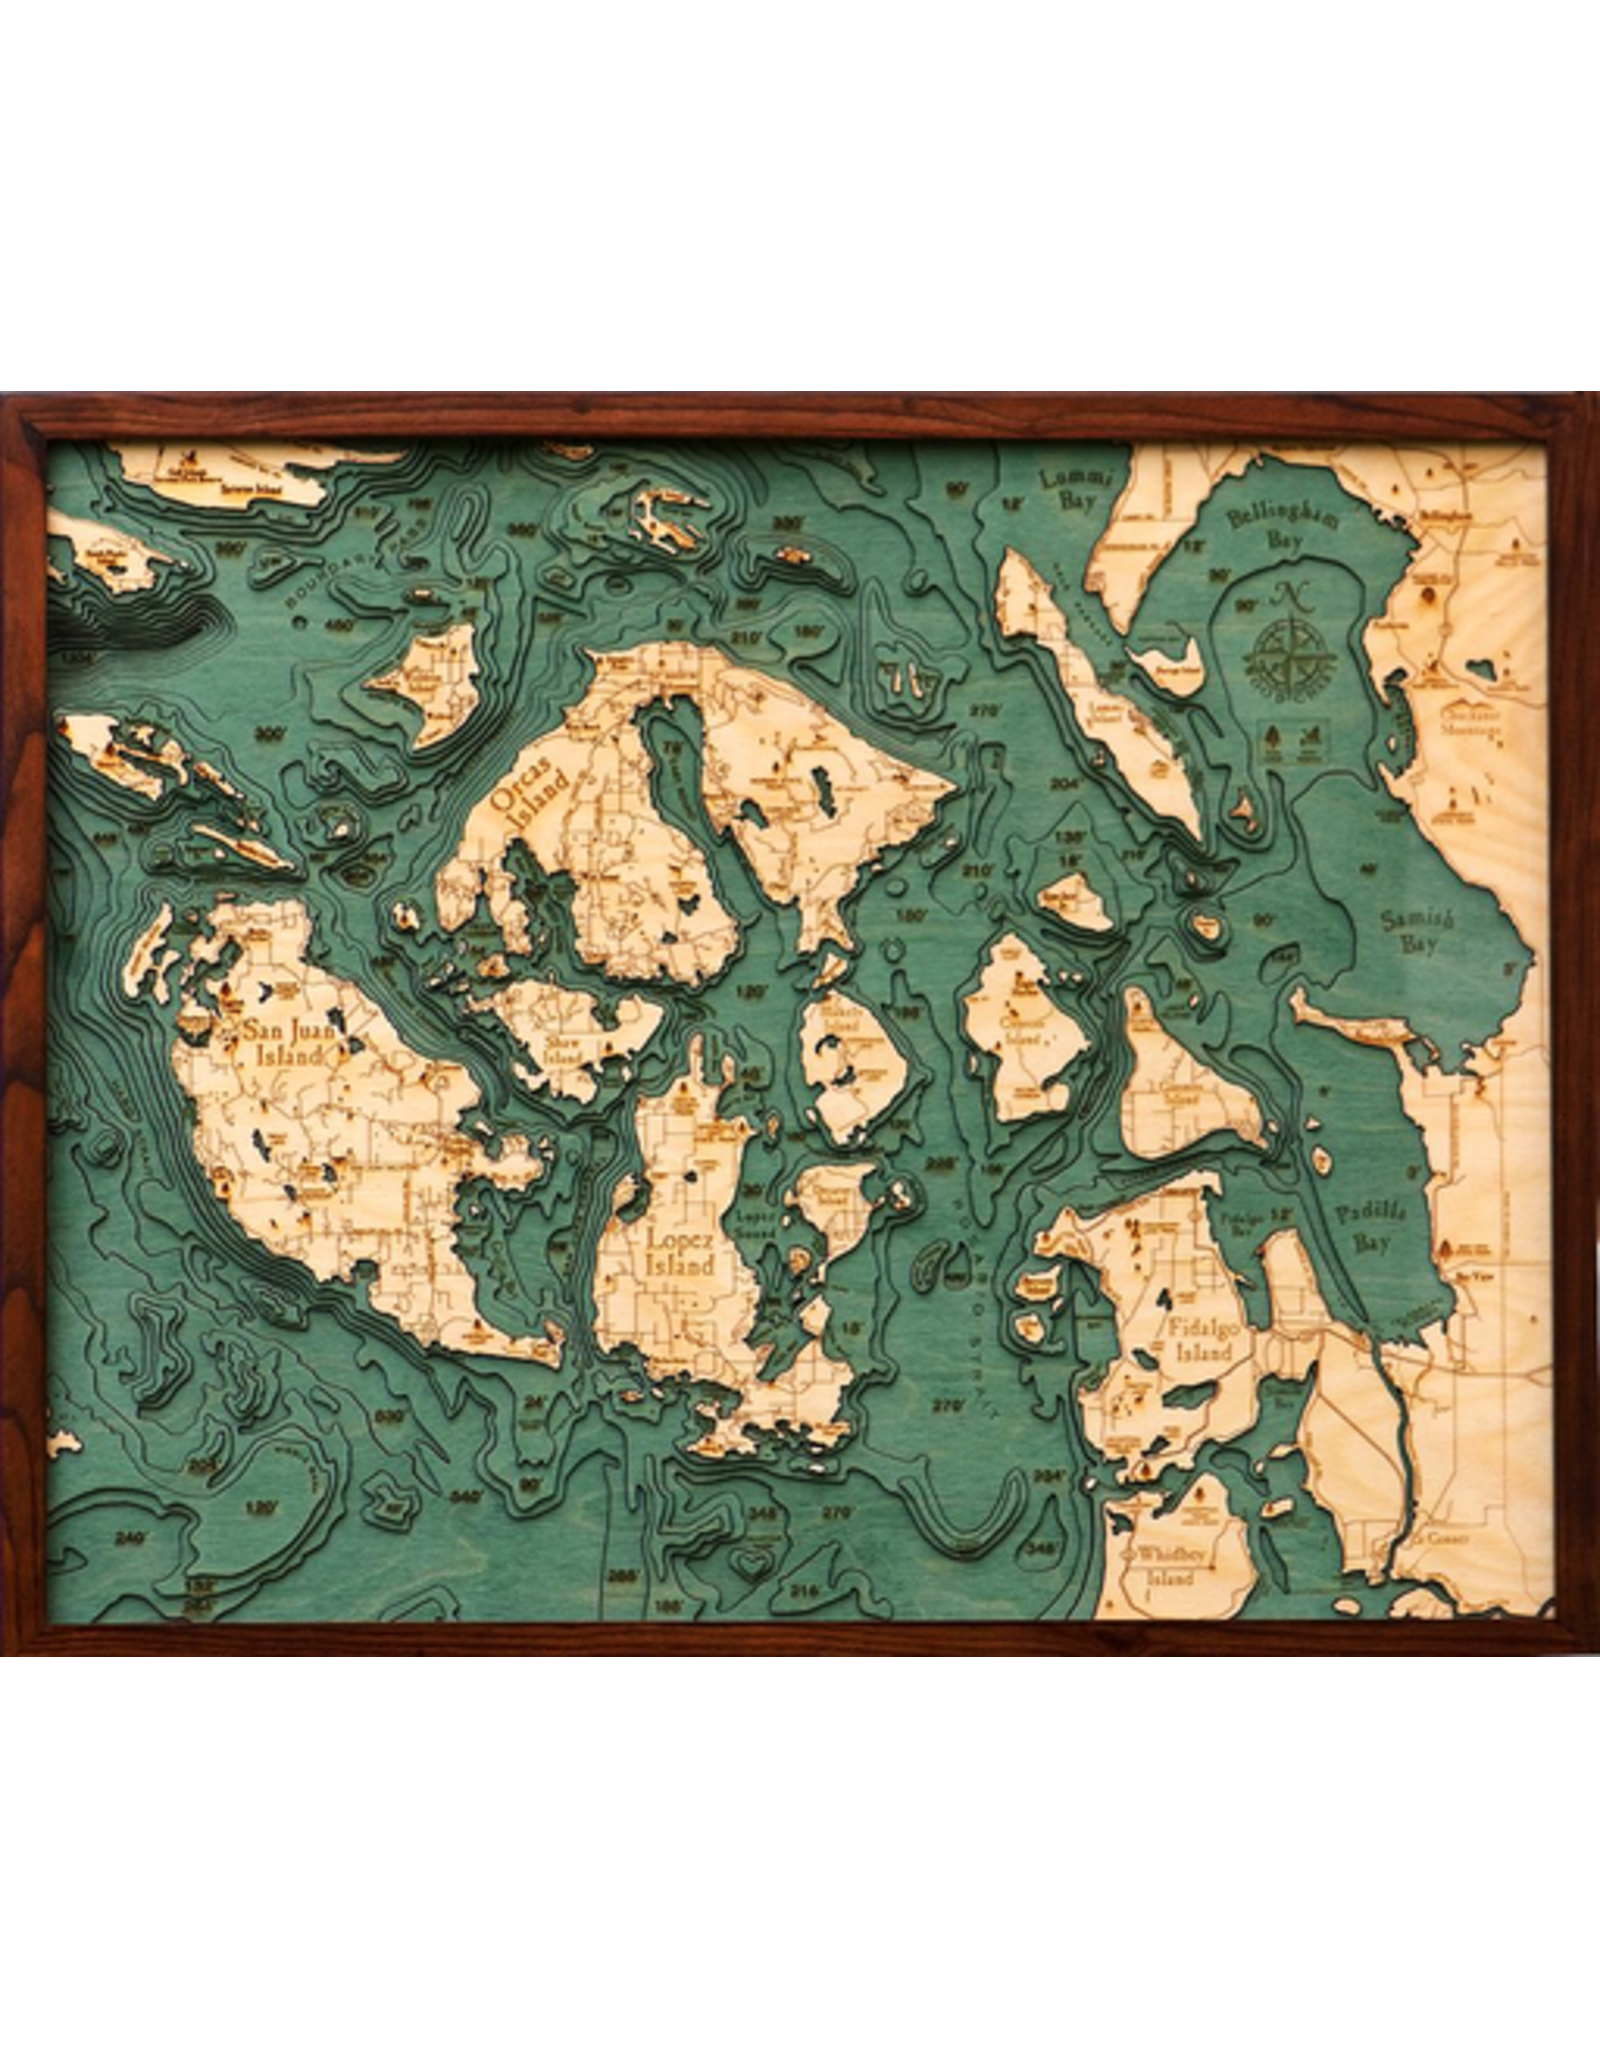 WoodCharts San Juan Islands, WA (Bathymetric 3-D Nautical WOODCHART)